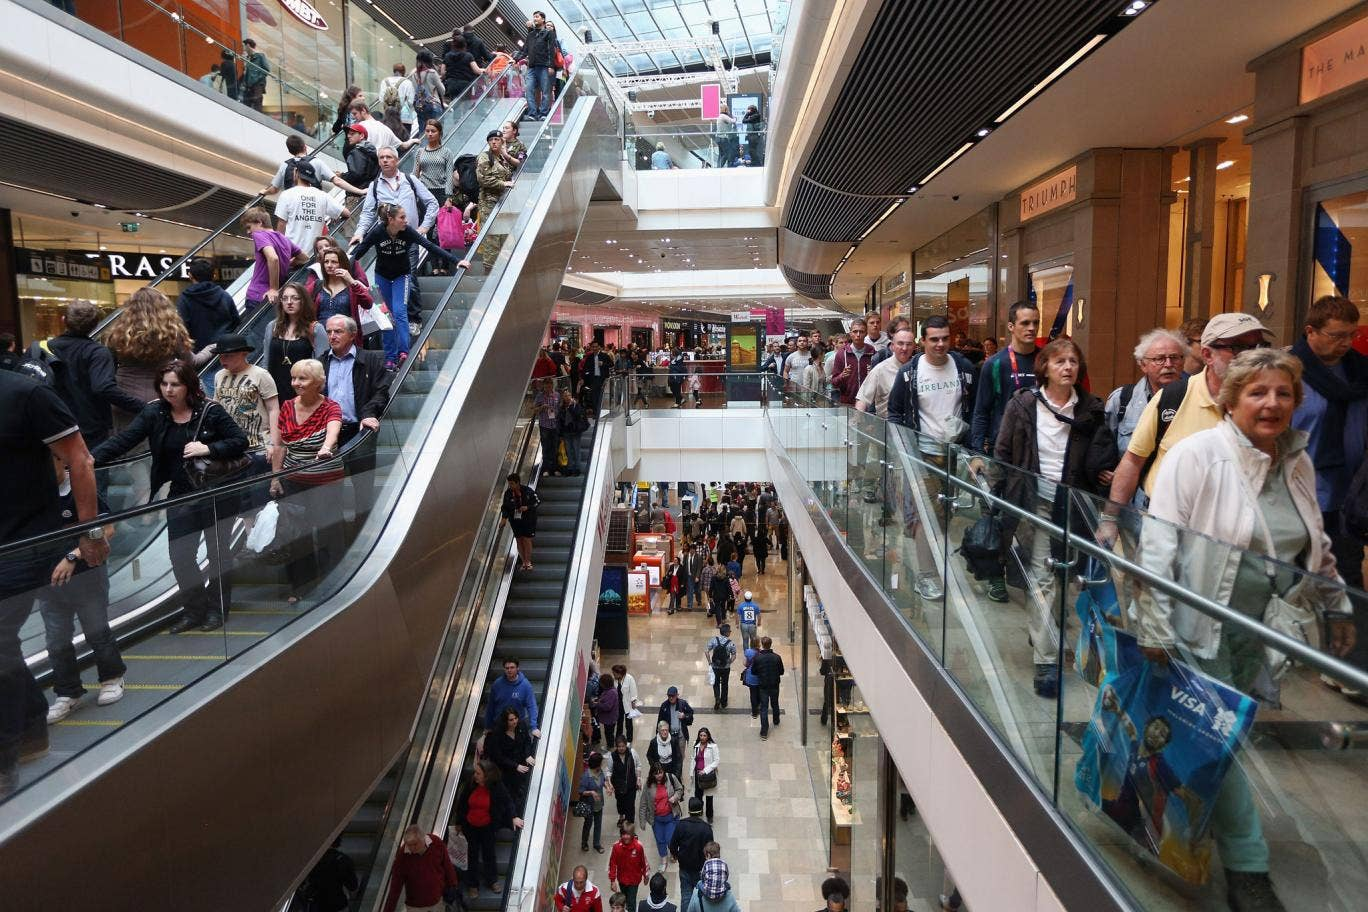 Spending and social welfare: Shoppers at Westfield Stratford